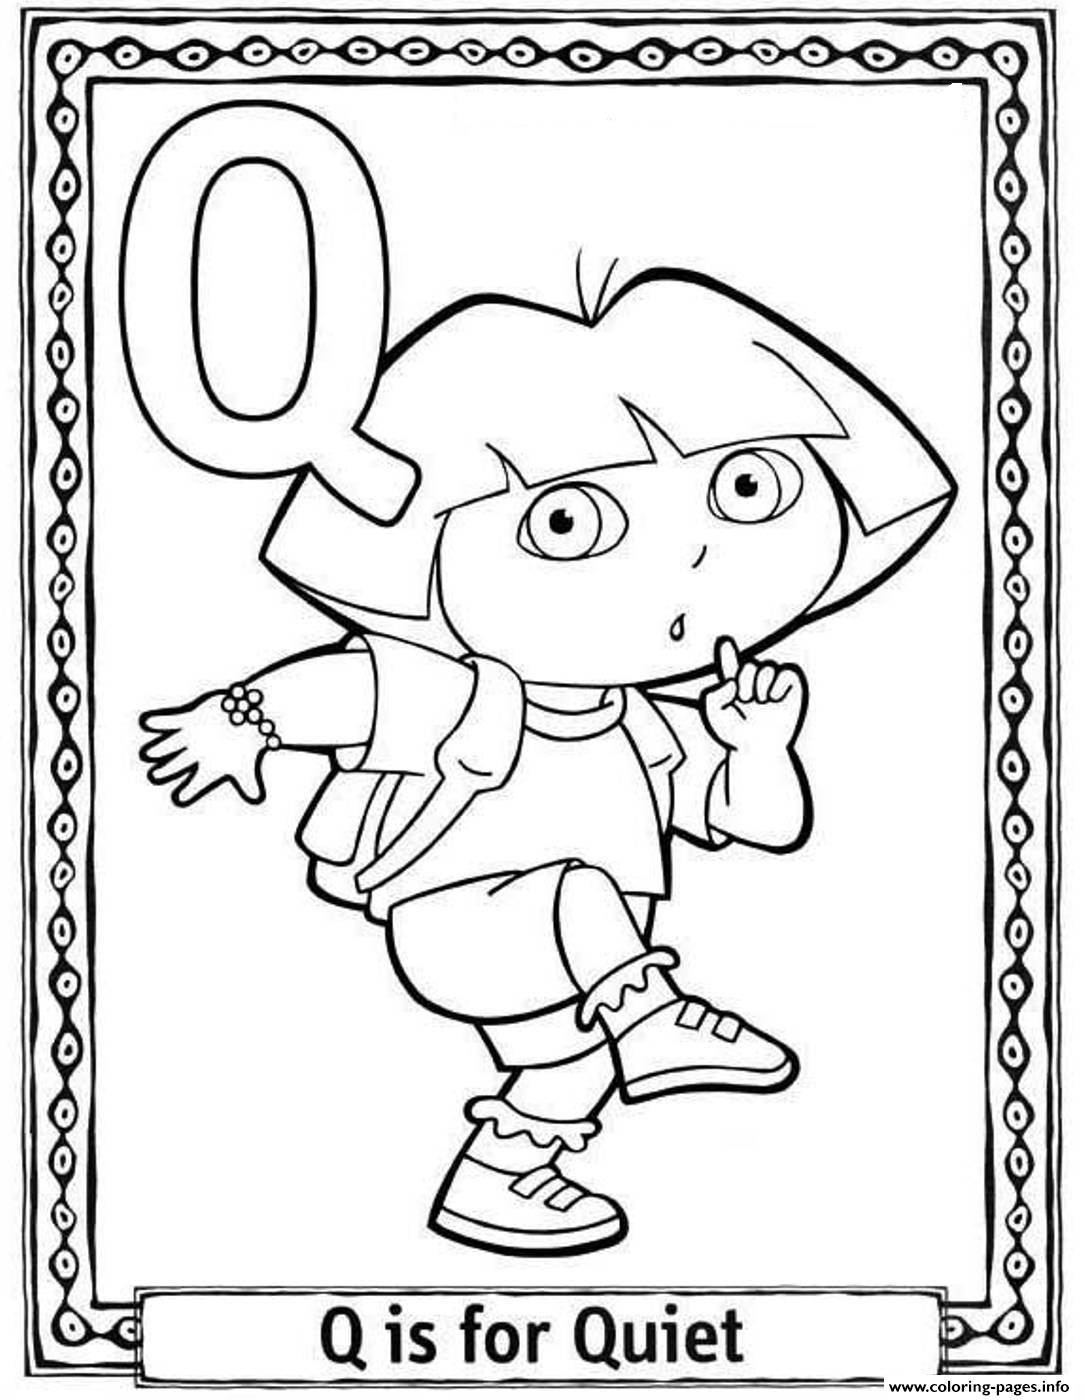 Dora Quiet Alphabet S Coloring Pages Printable